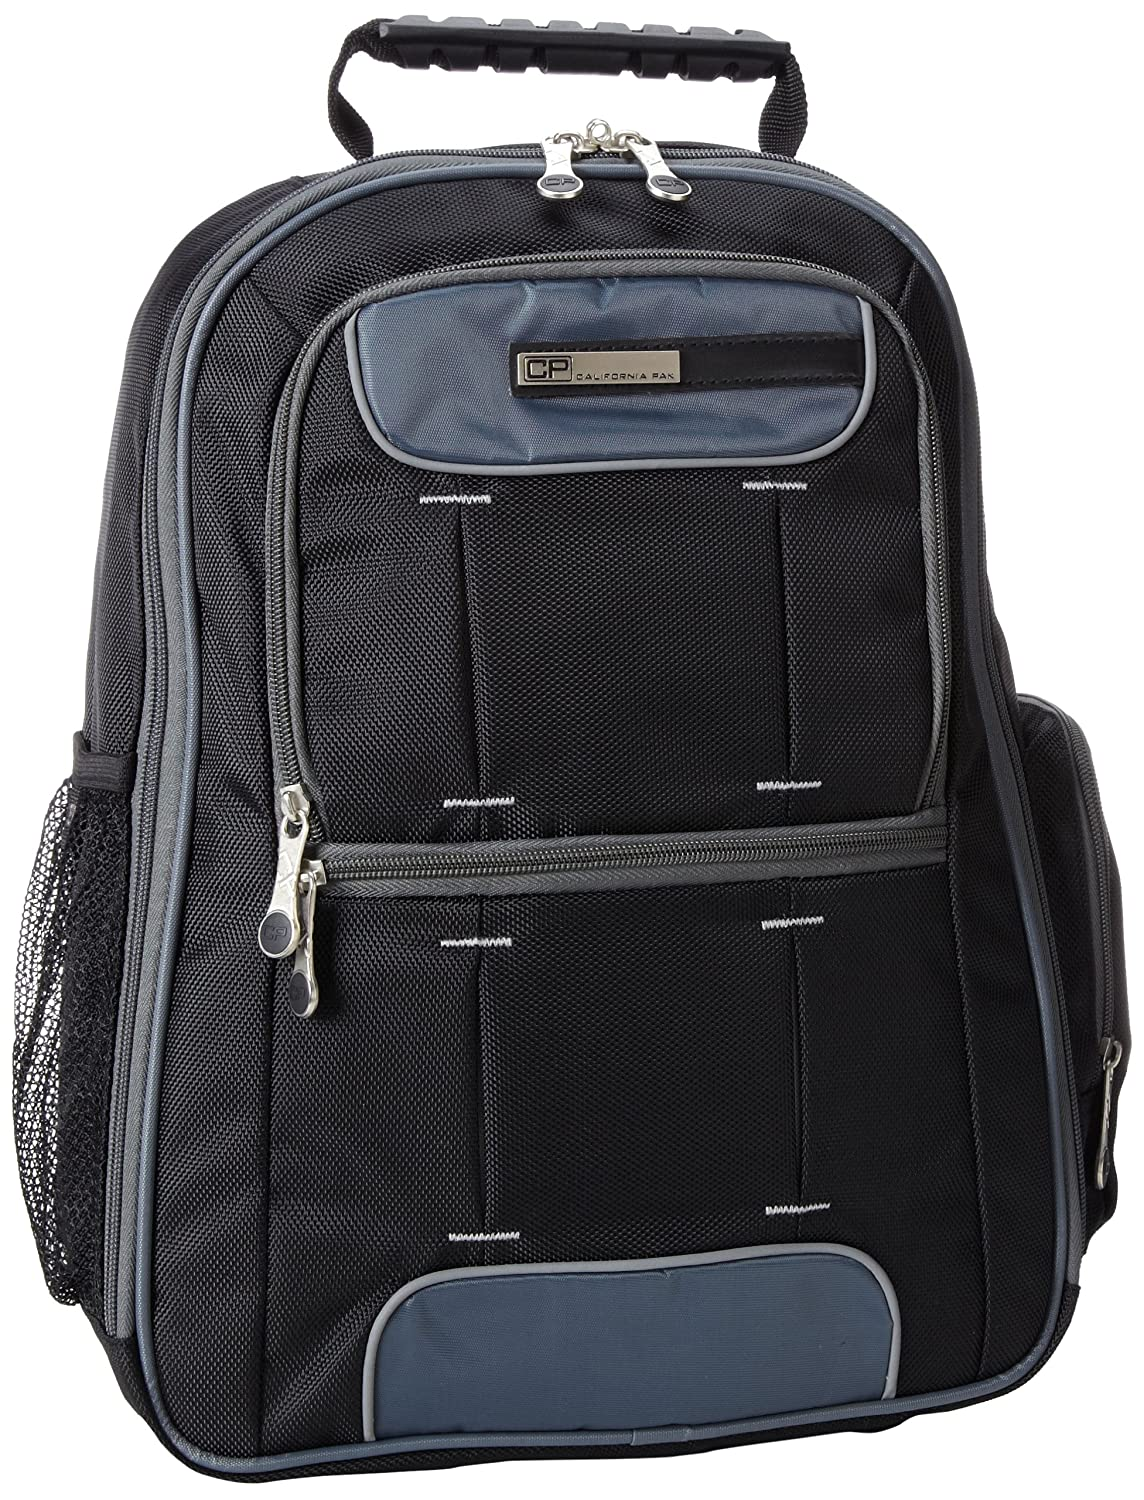 60%OFF CalPak Orbit 18-inch Deluxe Laptop Backpack, Black, One Size